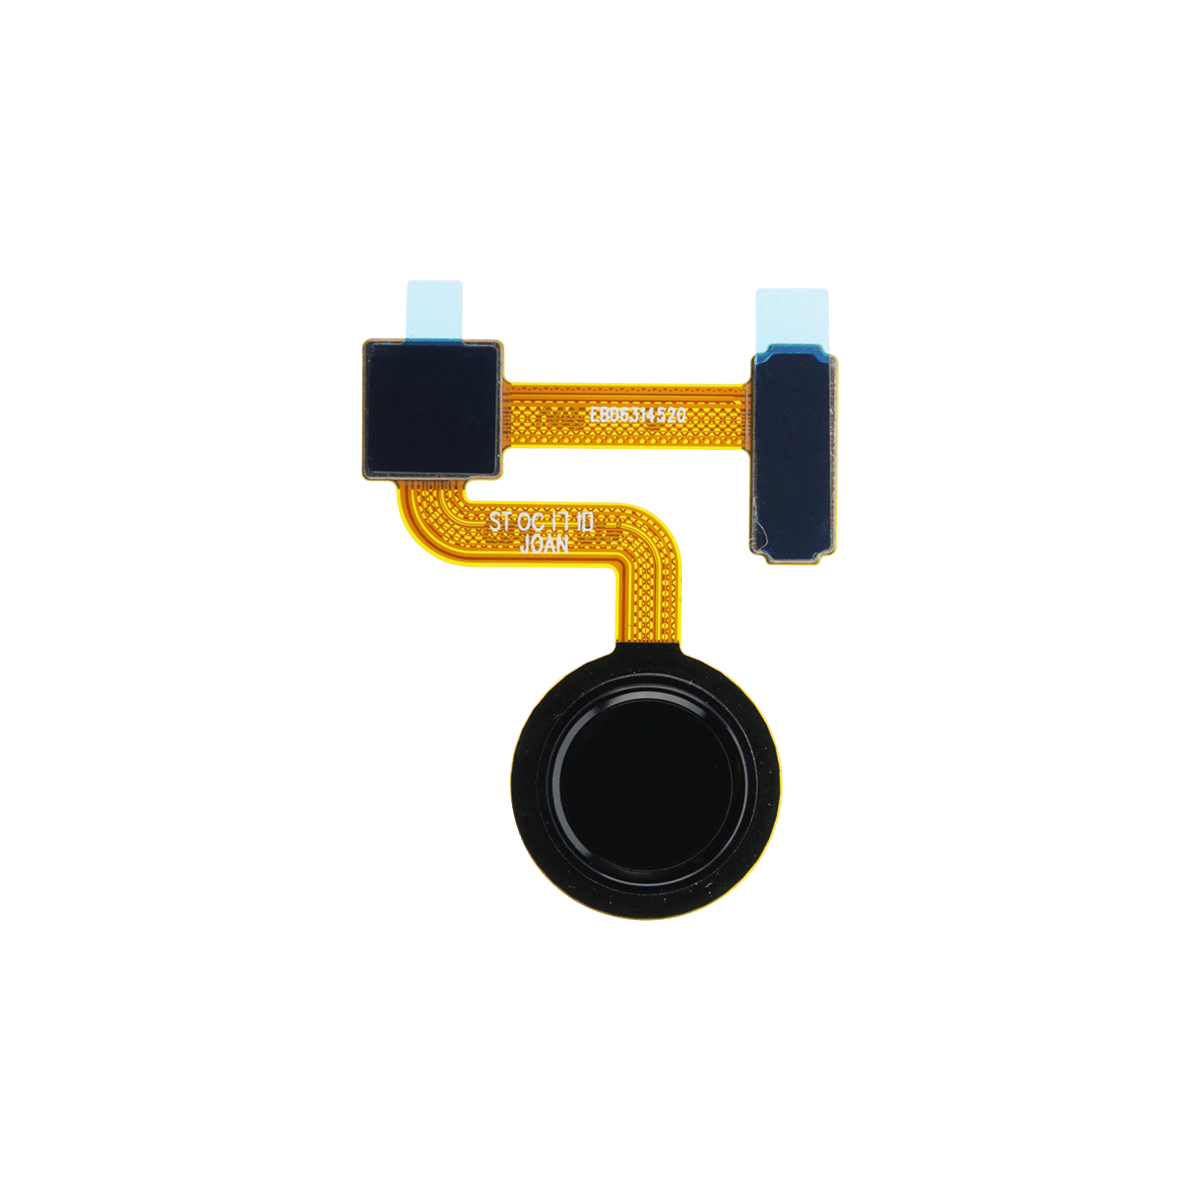 LG V30 Touch ID Flex Cable Replacement